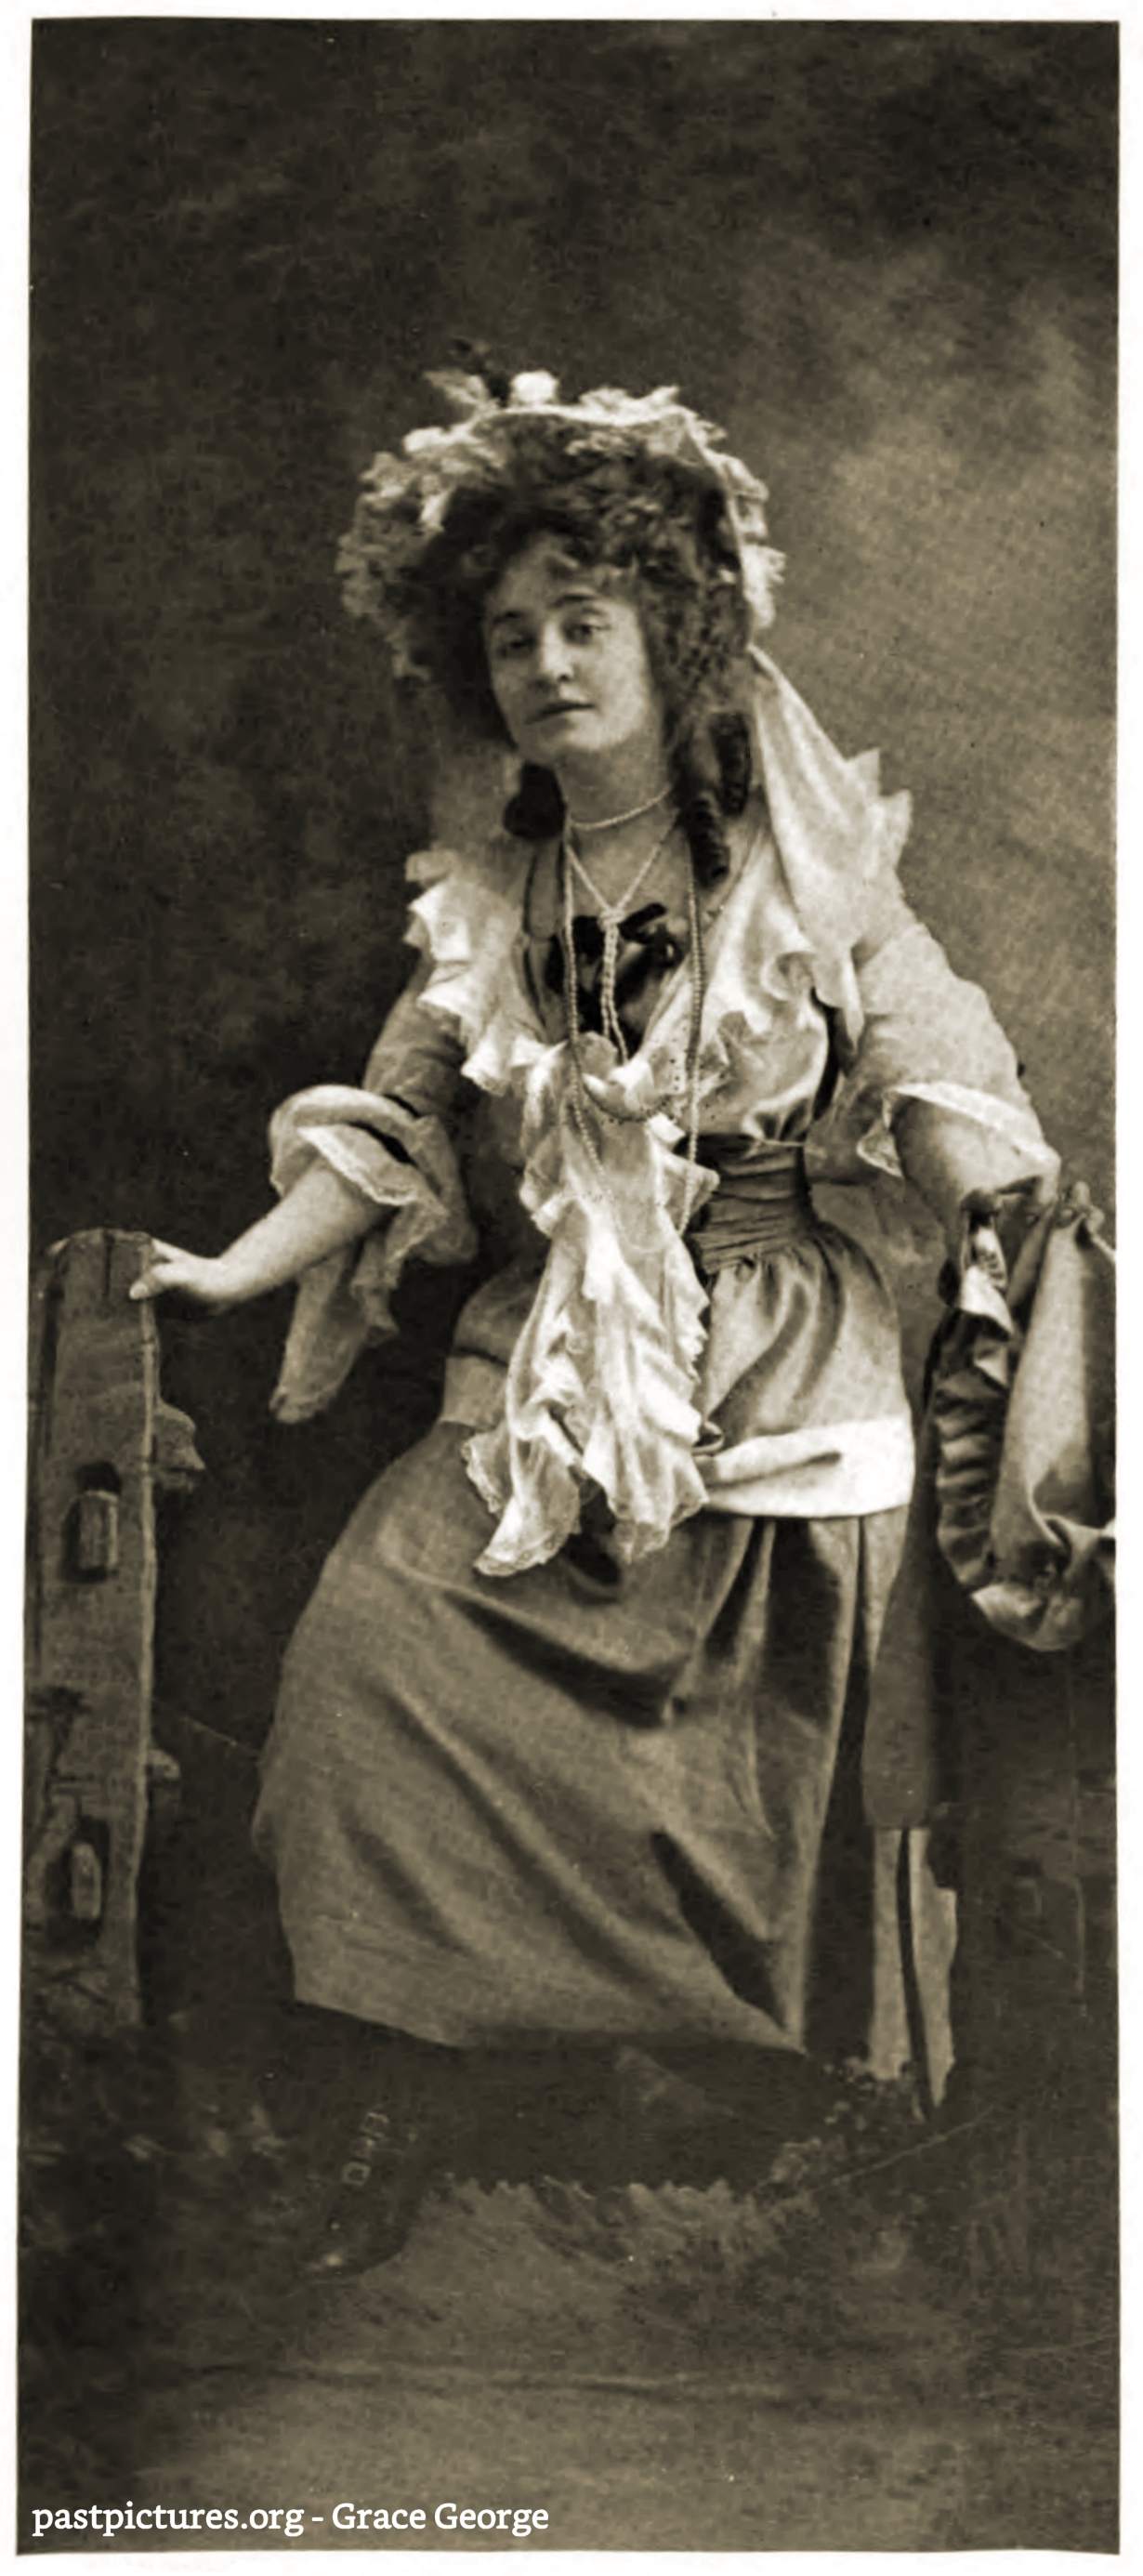 Grace George (1879 – 1961) American actress